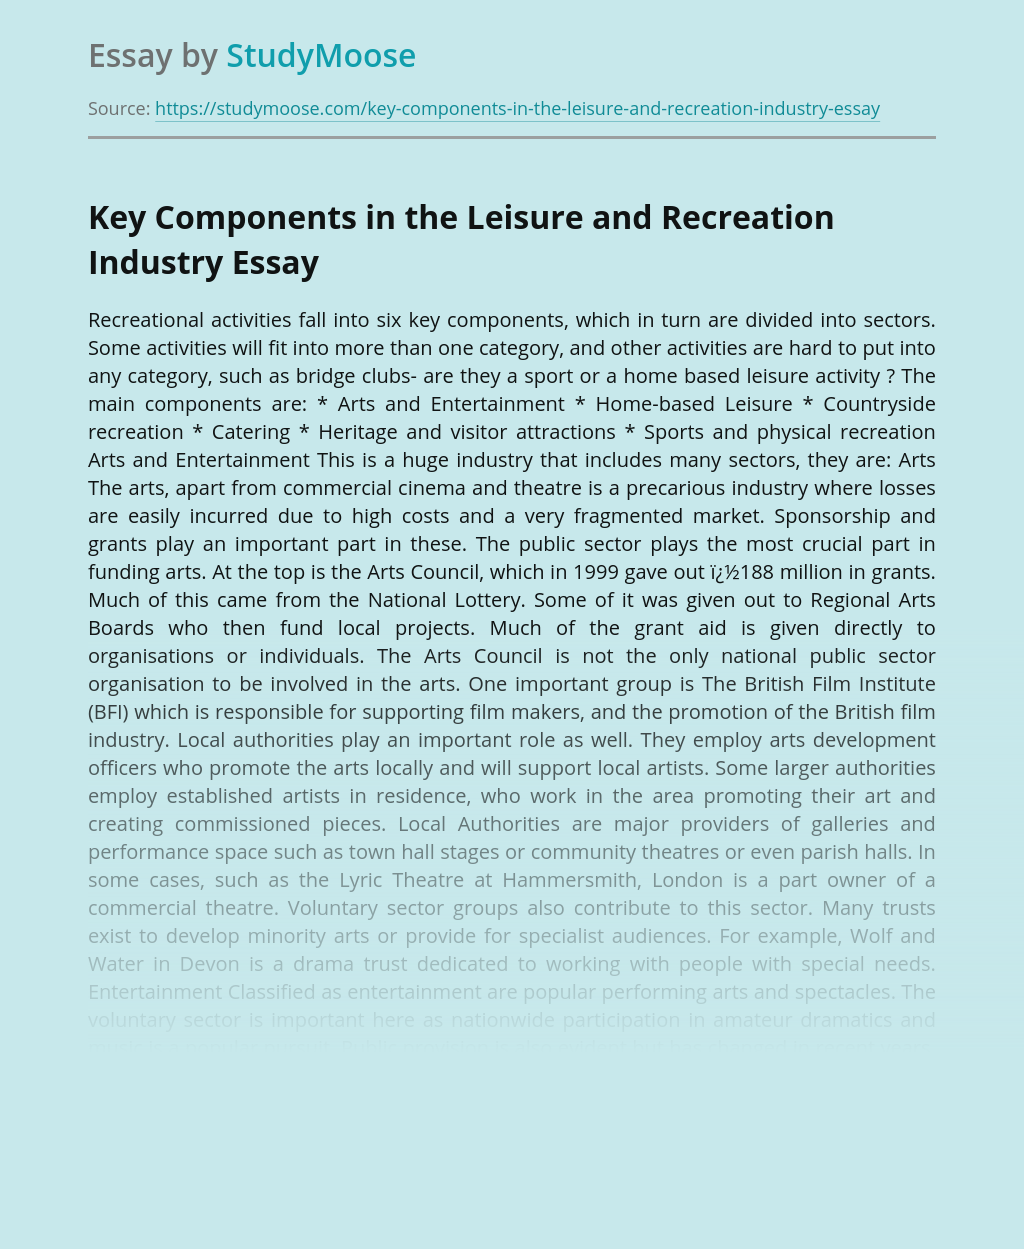 Key Components in the Leisure and Recreation Industry